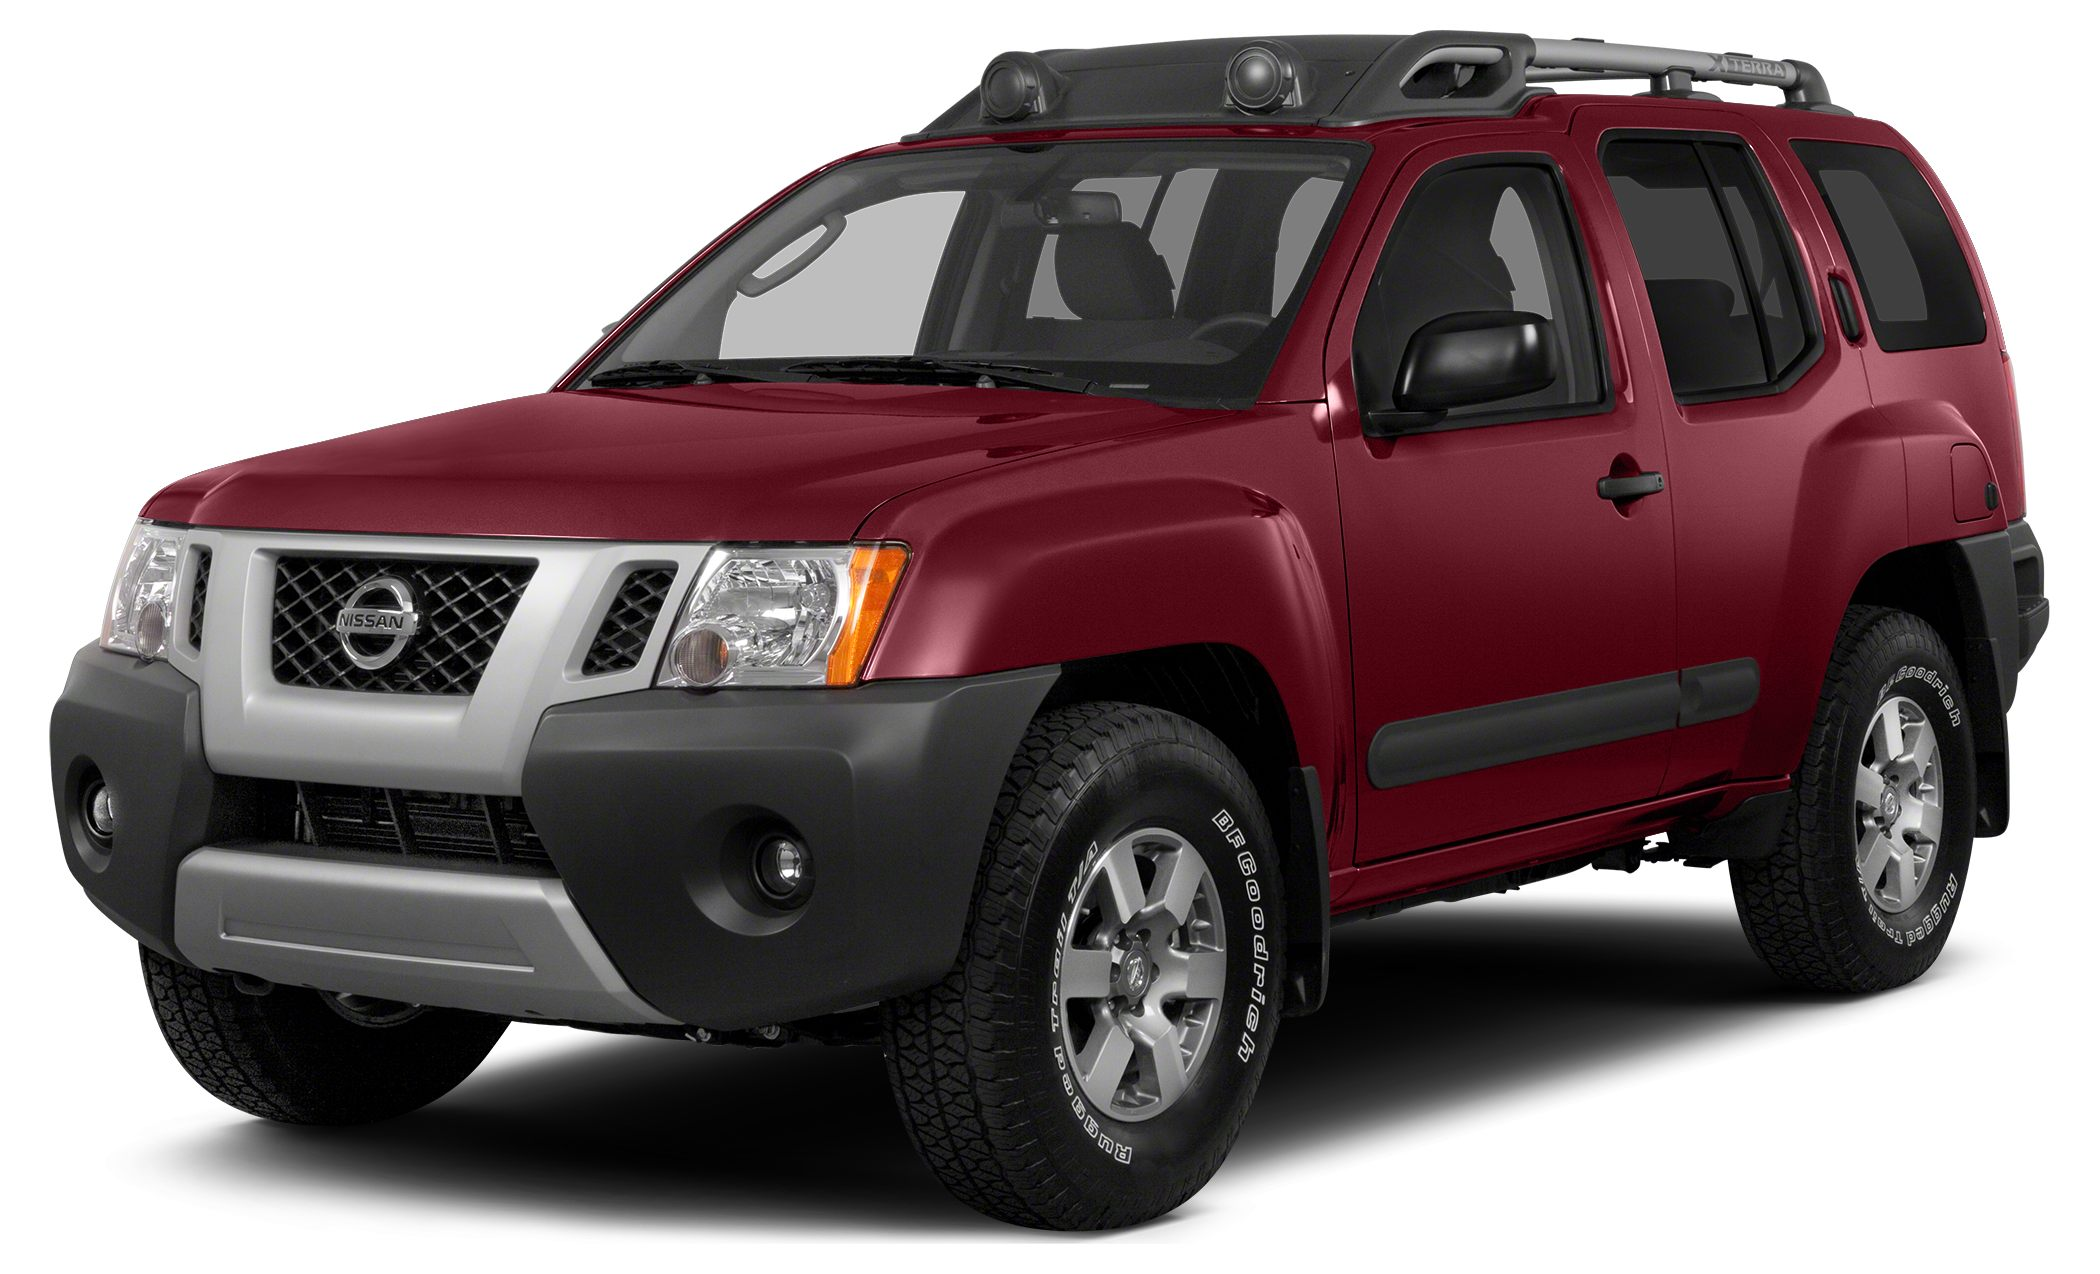 2015 Nissan Xterra S This rock-hard Xterra with its grippy 4WD will handle anything mother natur